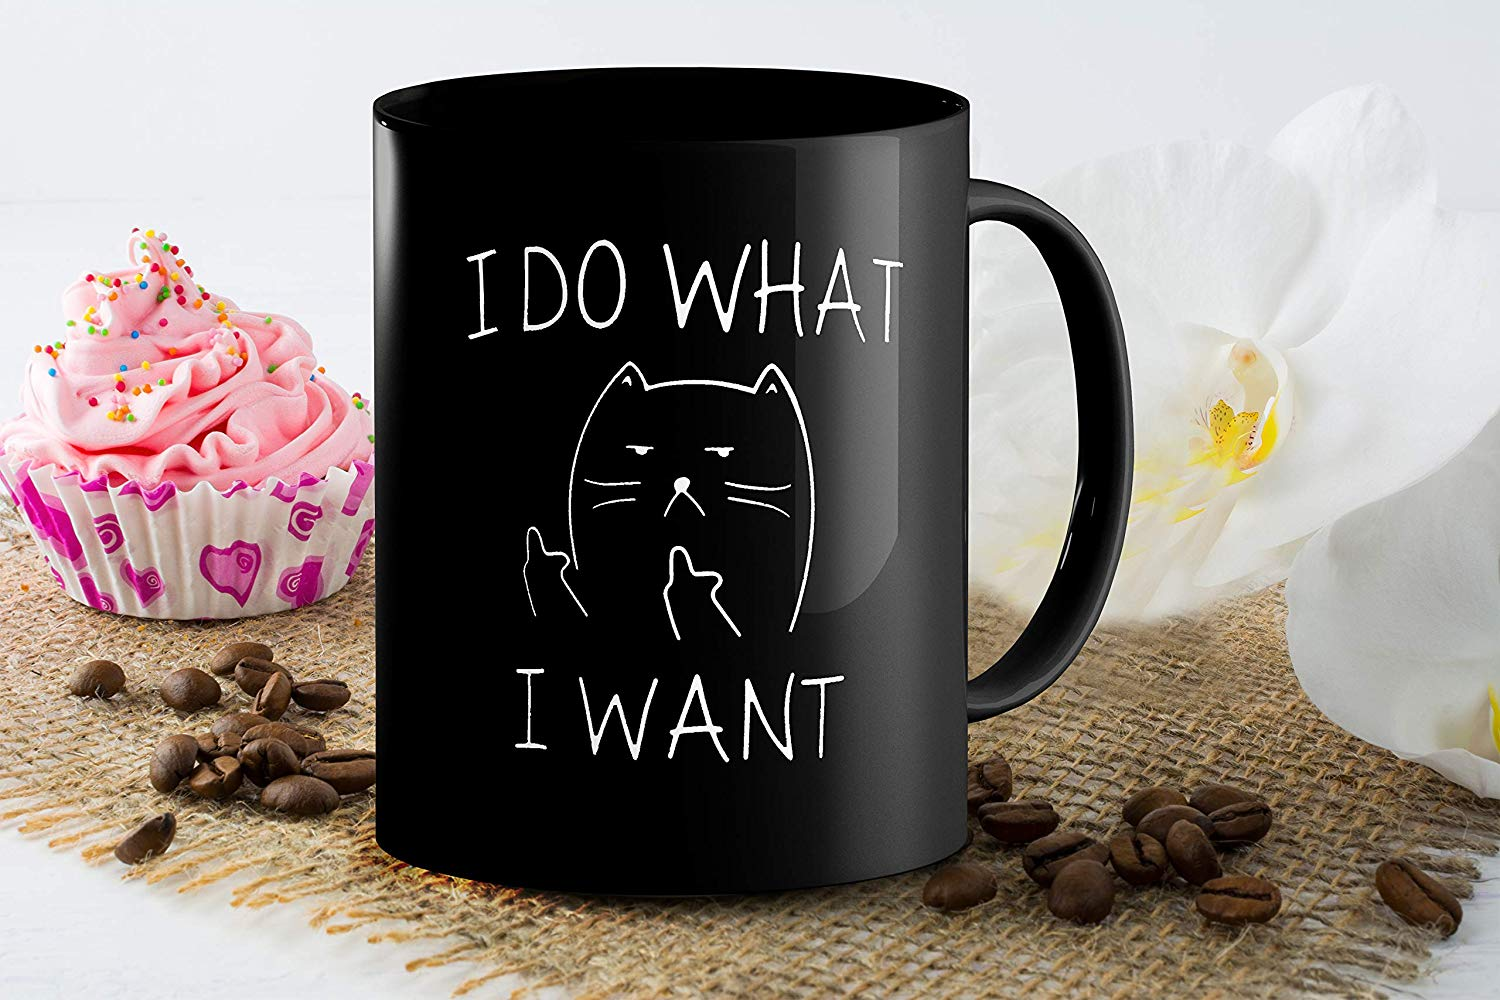 I Do What I Want Funny Coffee Mug Cat Middle Finger 11 Oz Birthday Gift For Men Women Him Or Her B079FSTVY3 4